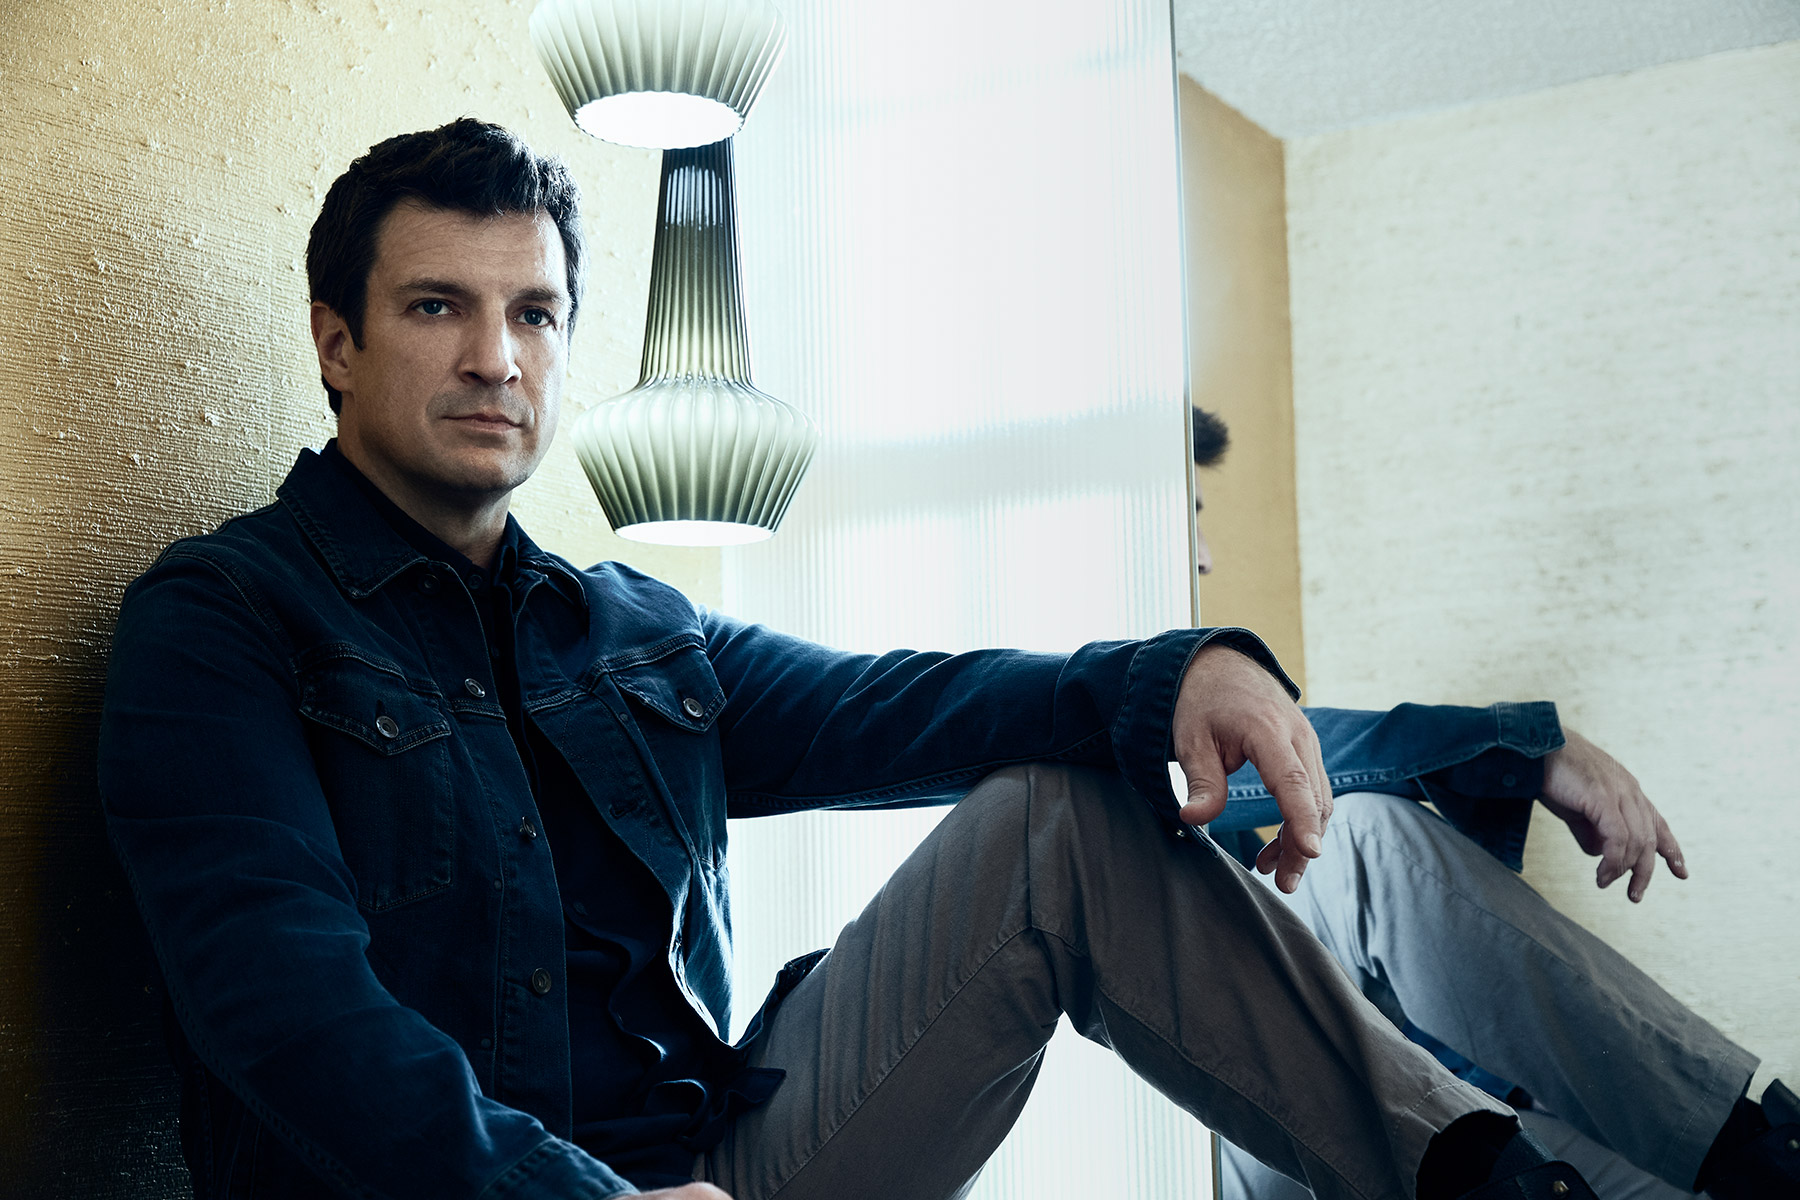 Nathan Fillion photographed by Scott Council